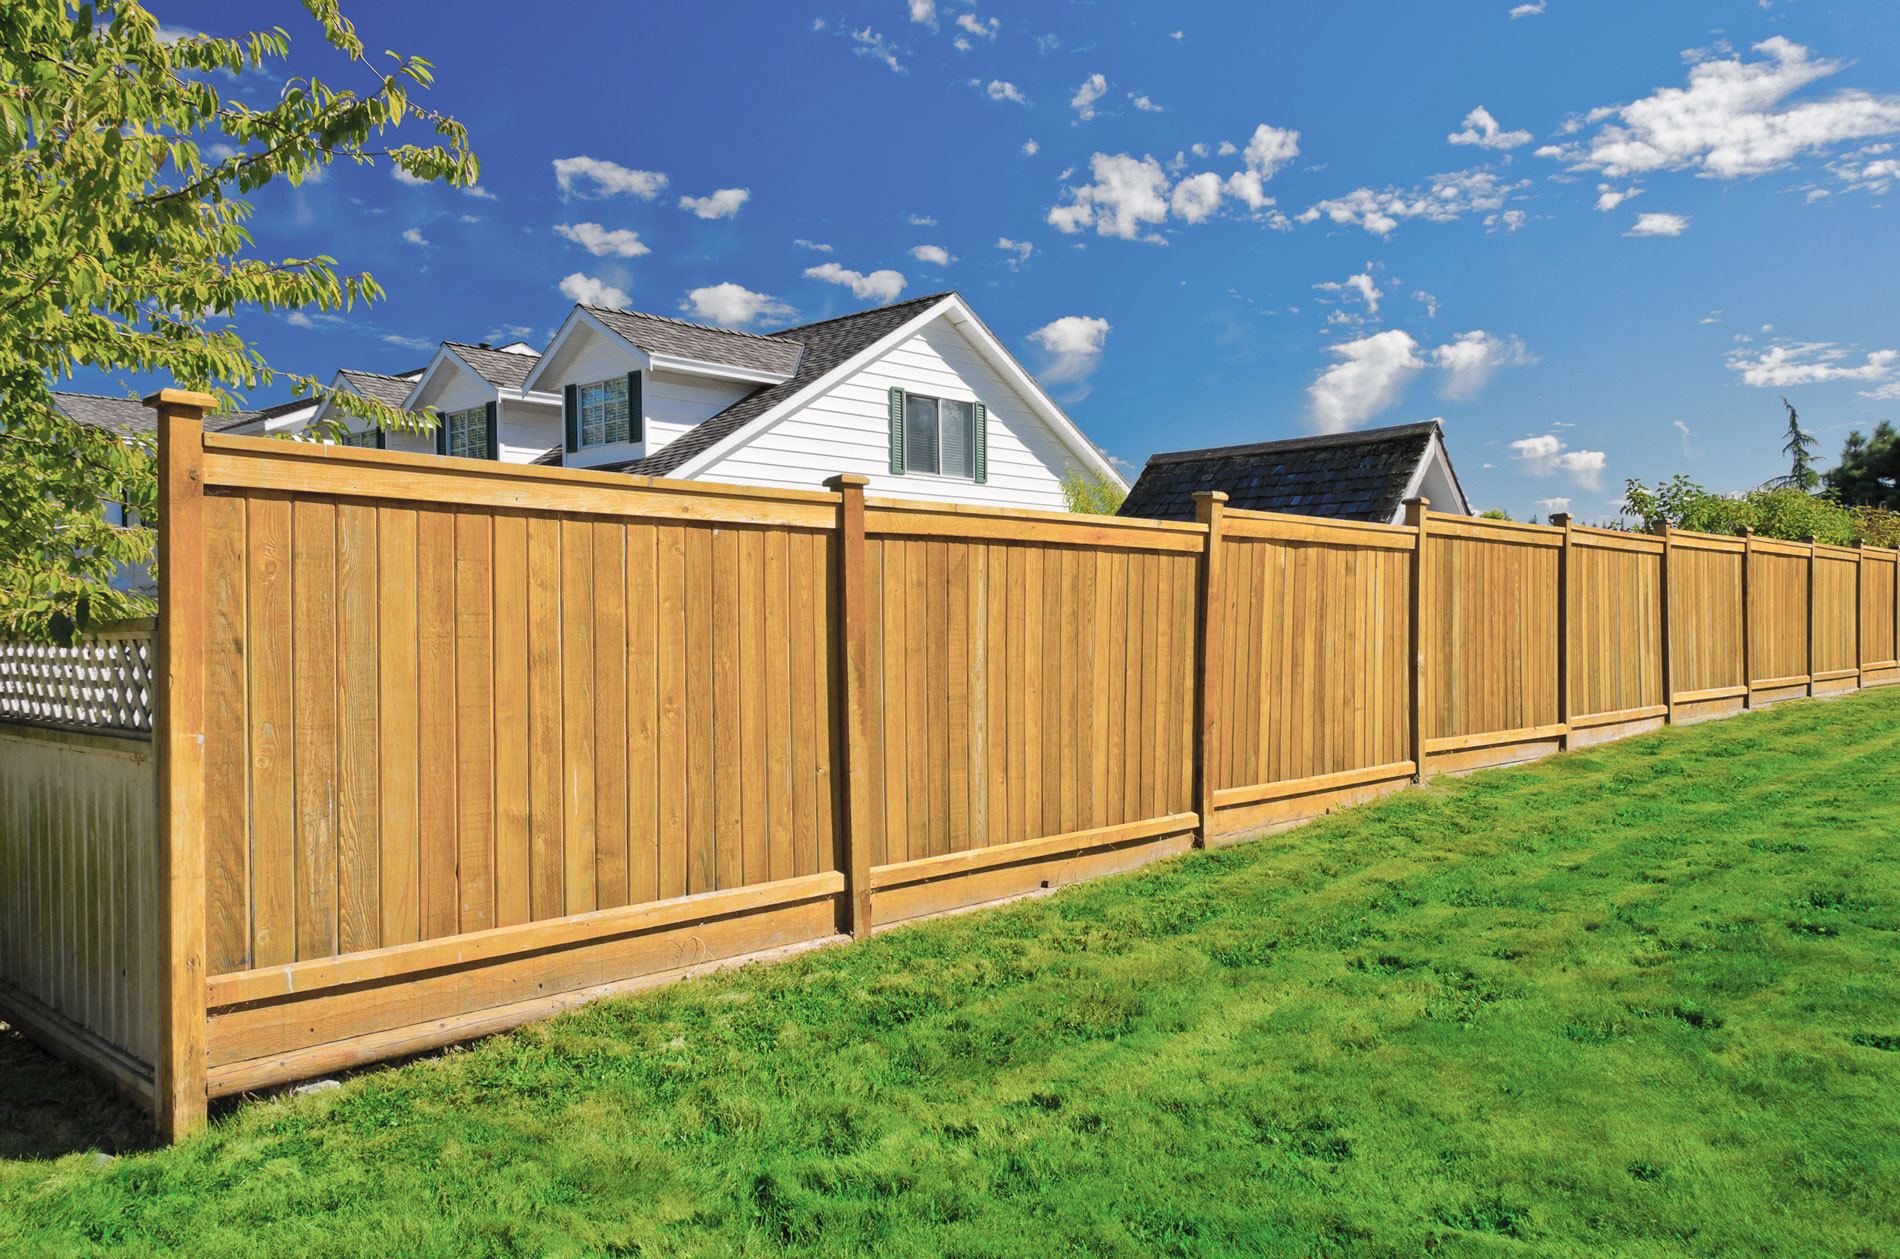 sturdy wooden fence